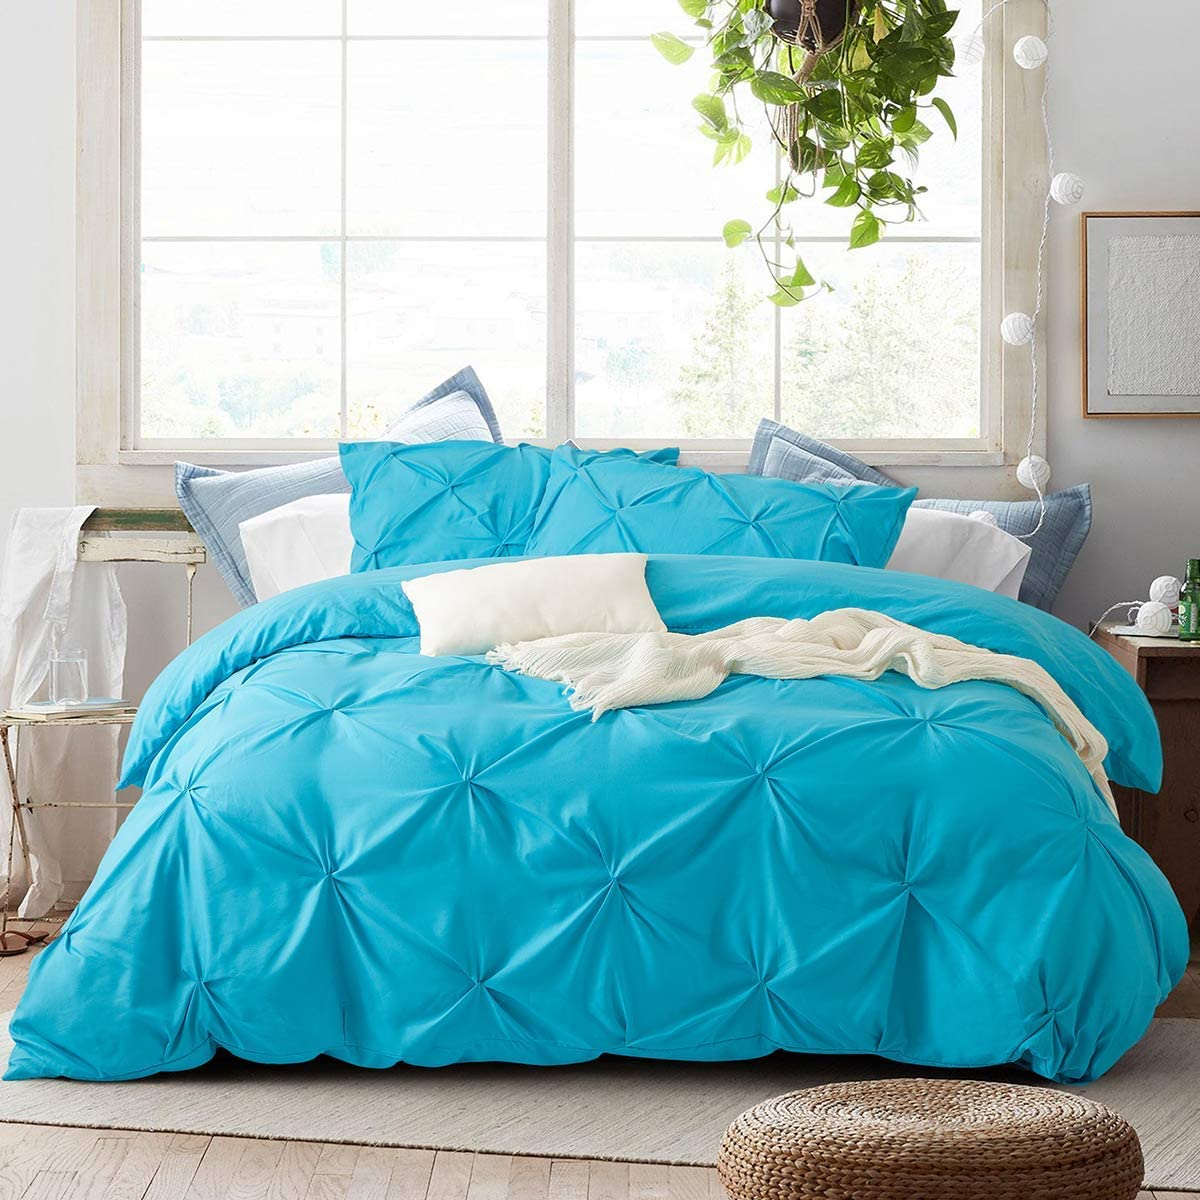 ARTALL Duvet Cover Set 2pcs Pinch Pleat Comforter Cover Bedding Sets Brushed Microfiber with Zipper Closure, Teal, Twin Size